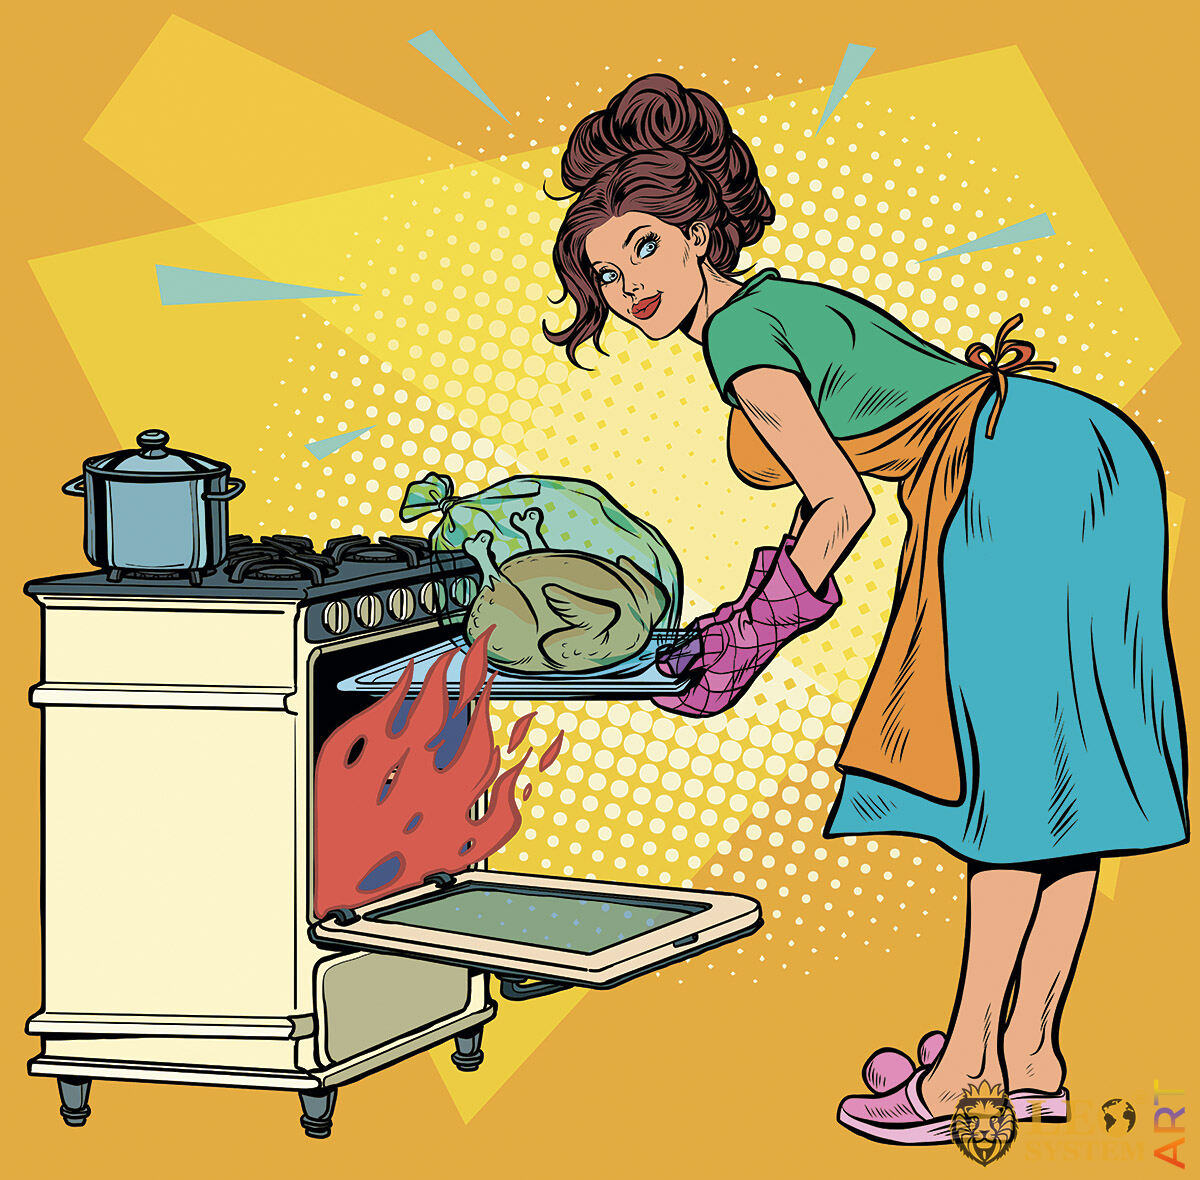 Housewife puts chicken in the oven to bake